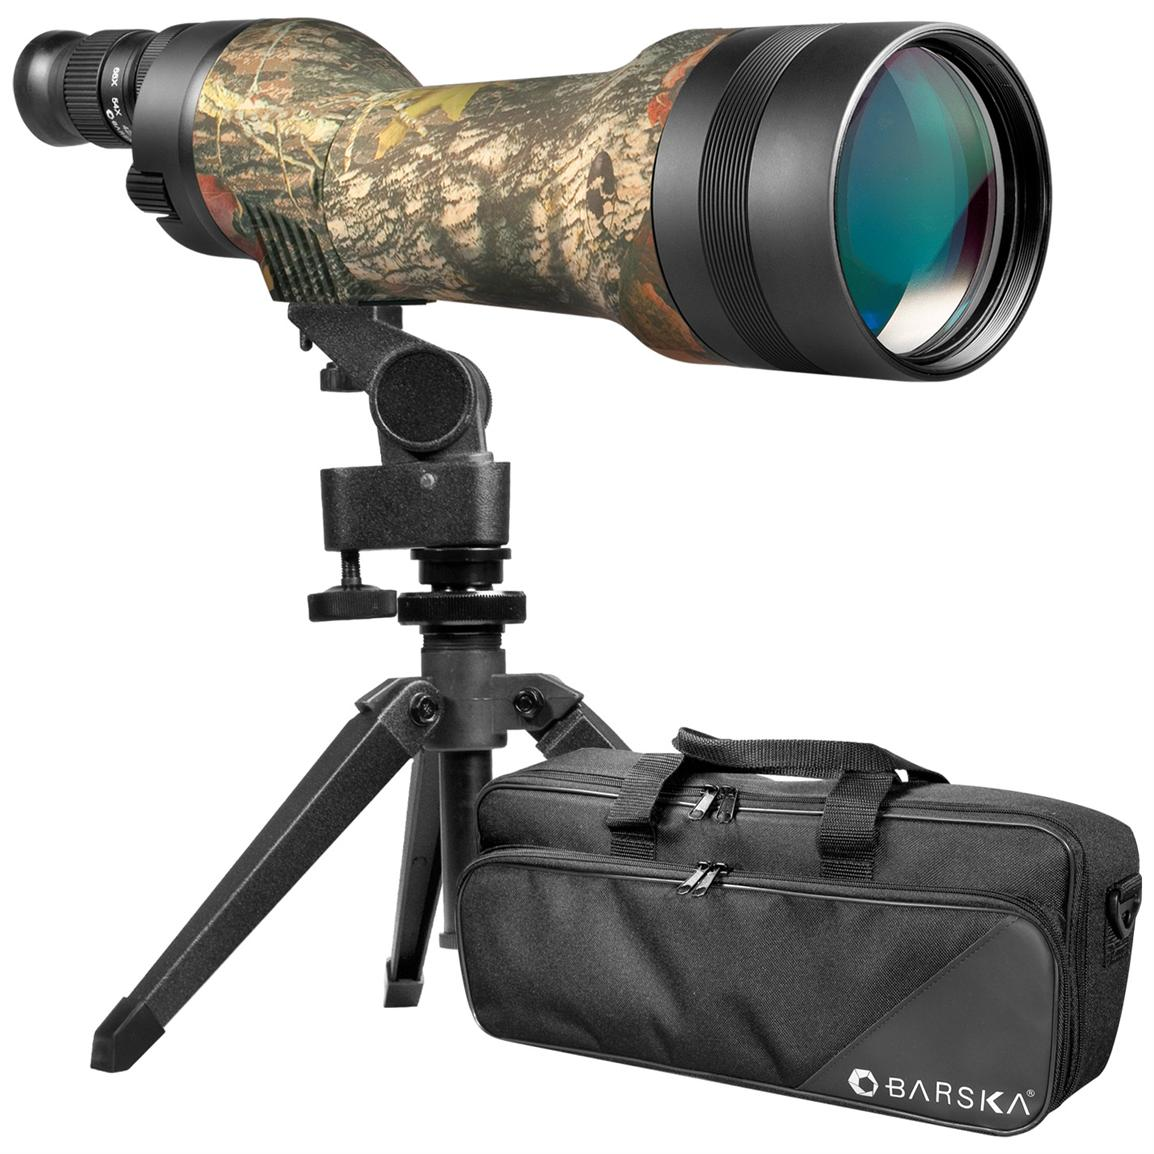 Barska 22-66x80mm Waterproof Spotter Pro Camo Spotting Scope